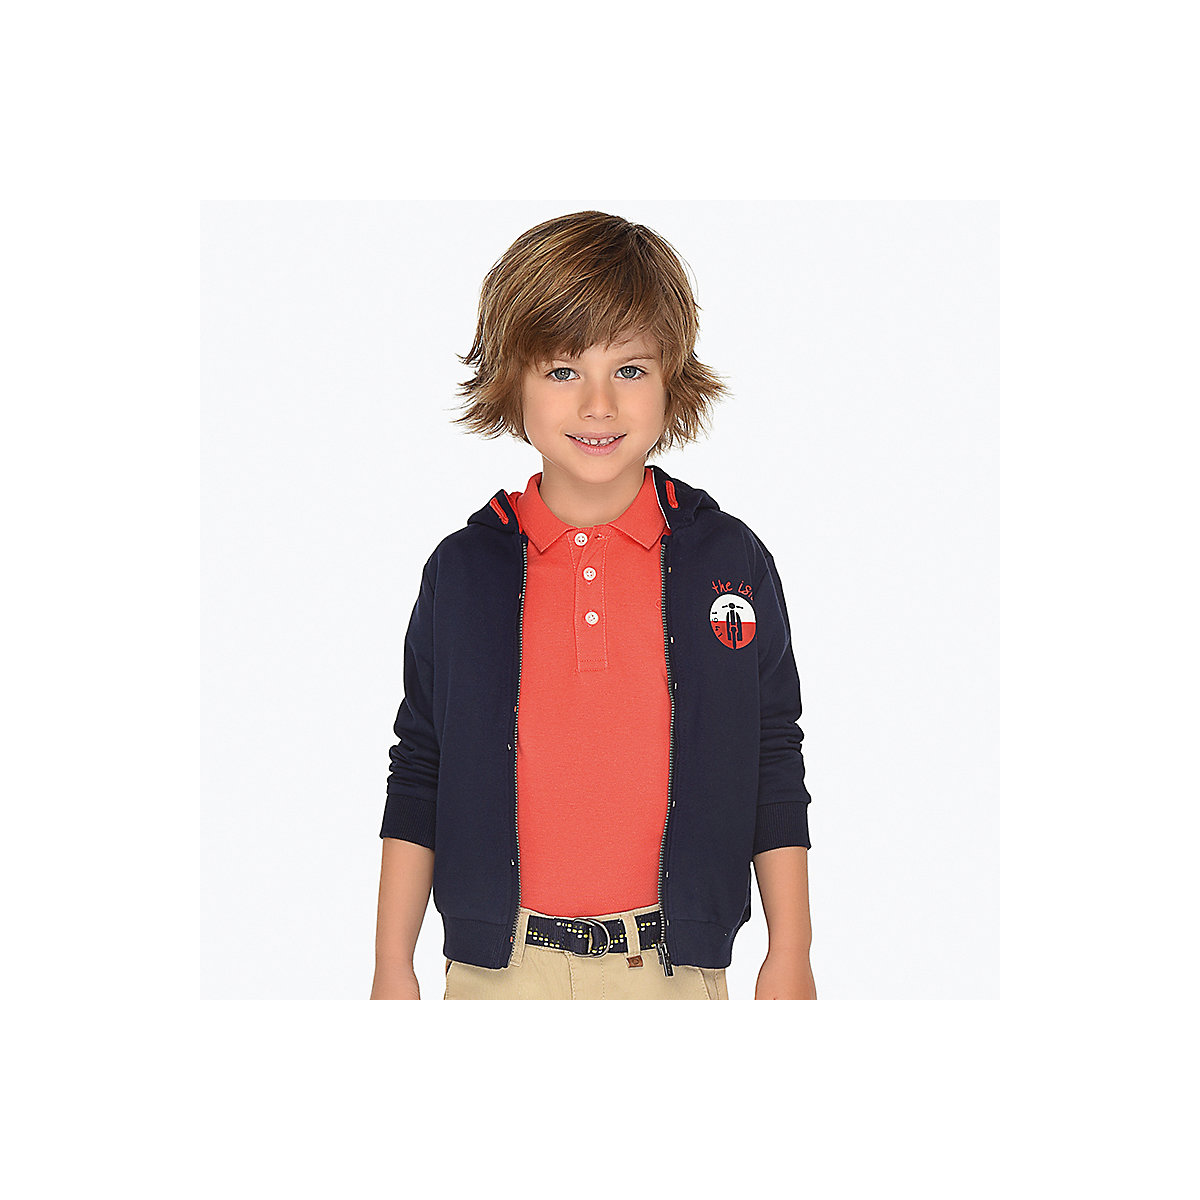 Фото - MAYORAL Hoodies & Sweatshirts 10681356 pullover jumper for boys and girls clothes children's sweatshirt Cotton Boys mayoral sweaters 10692403 pullover jumper for boys and girls jackets boys